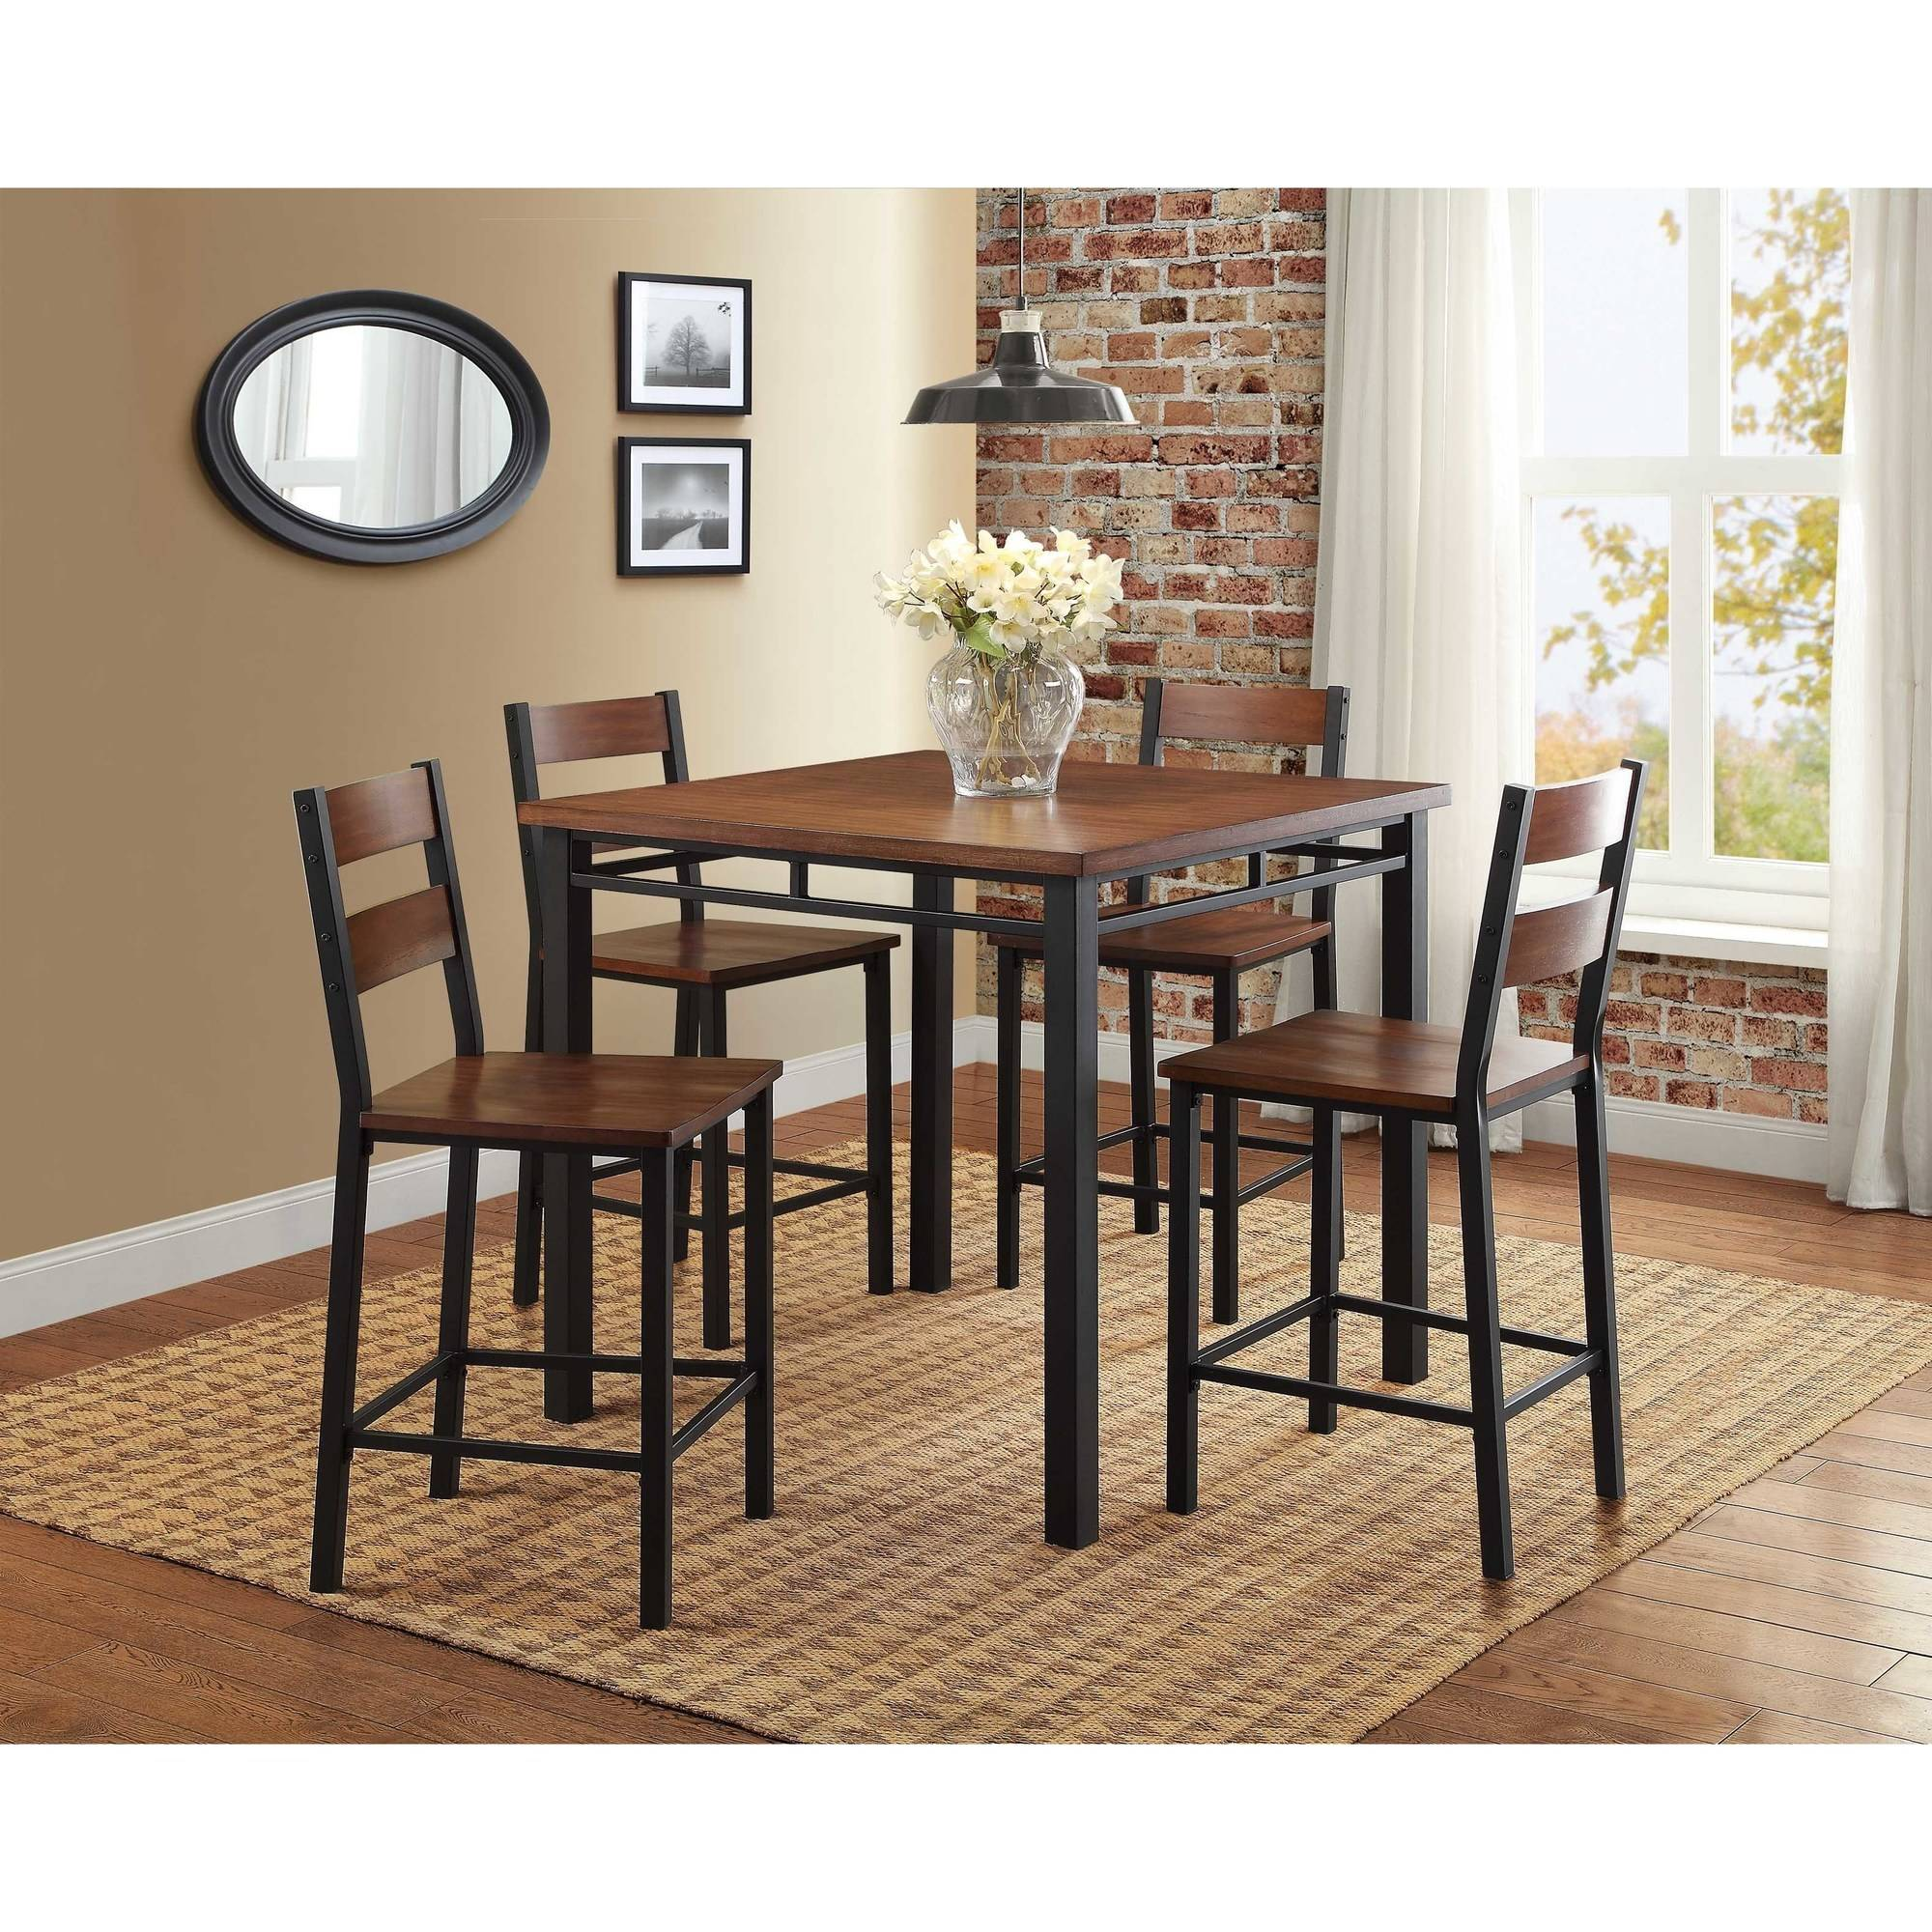 Dorel Living Valerie 3-Piece Counter-Height Glass and Metal Dining Set - Walmart.com  sc 1 st  Walmart : counter tables sets - pezcame.com